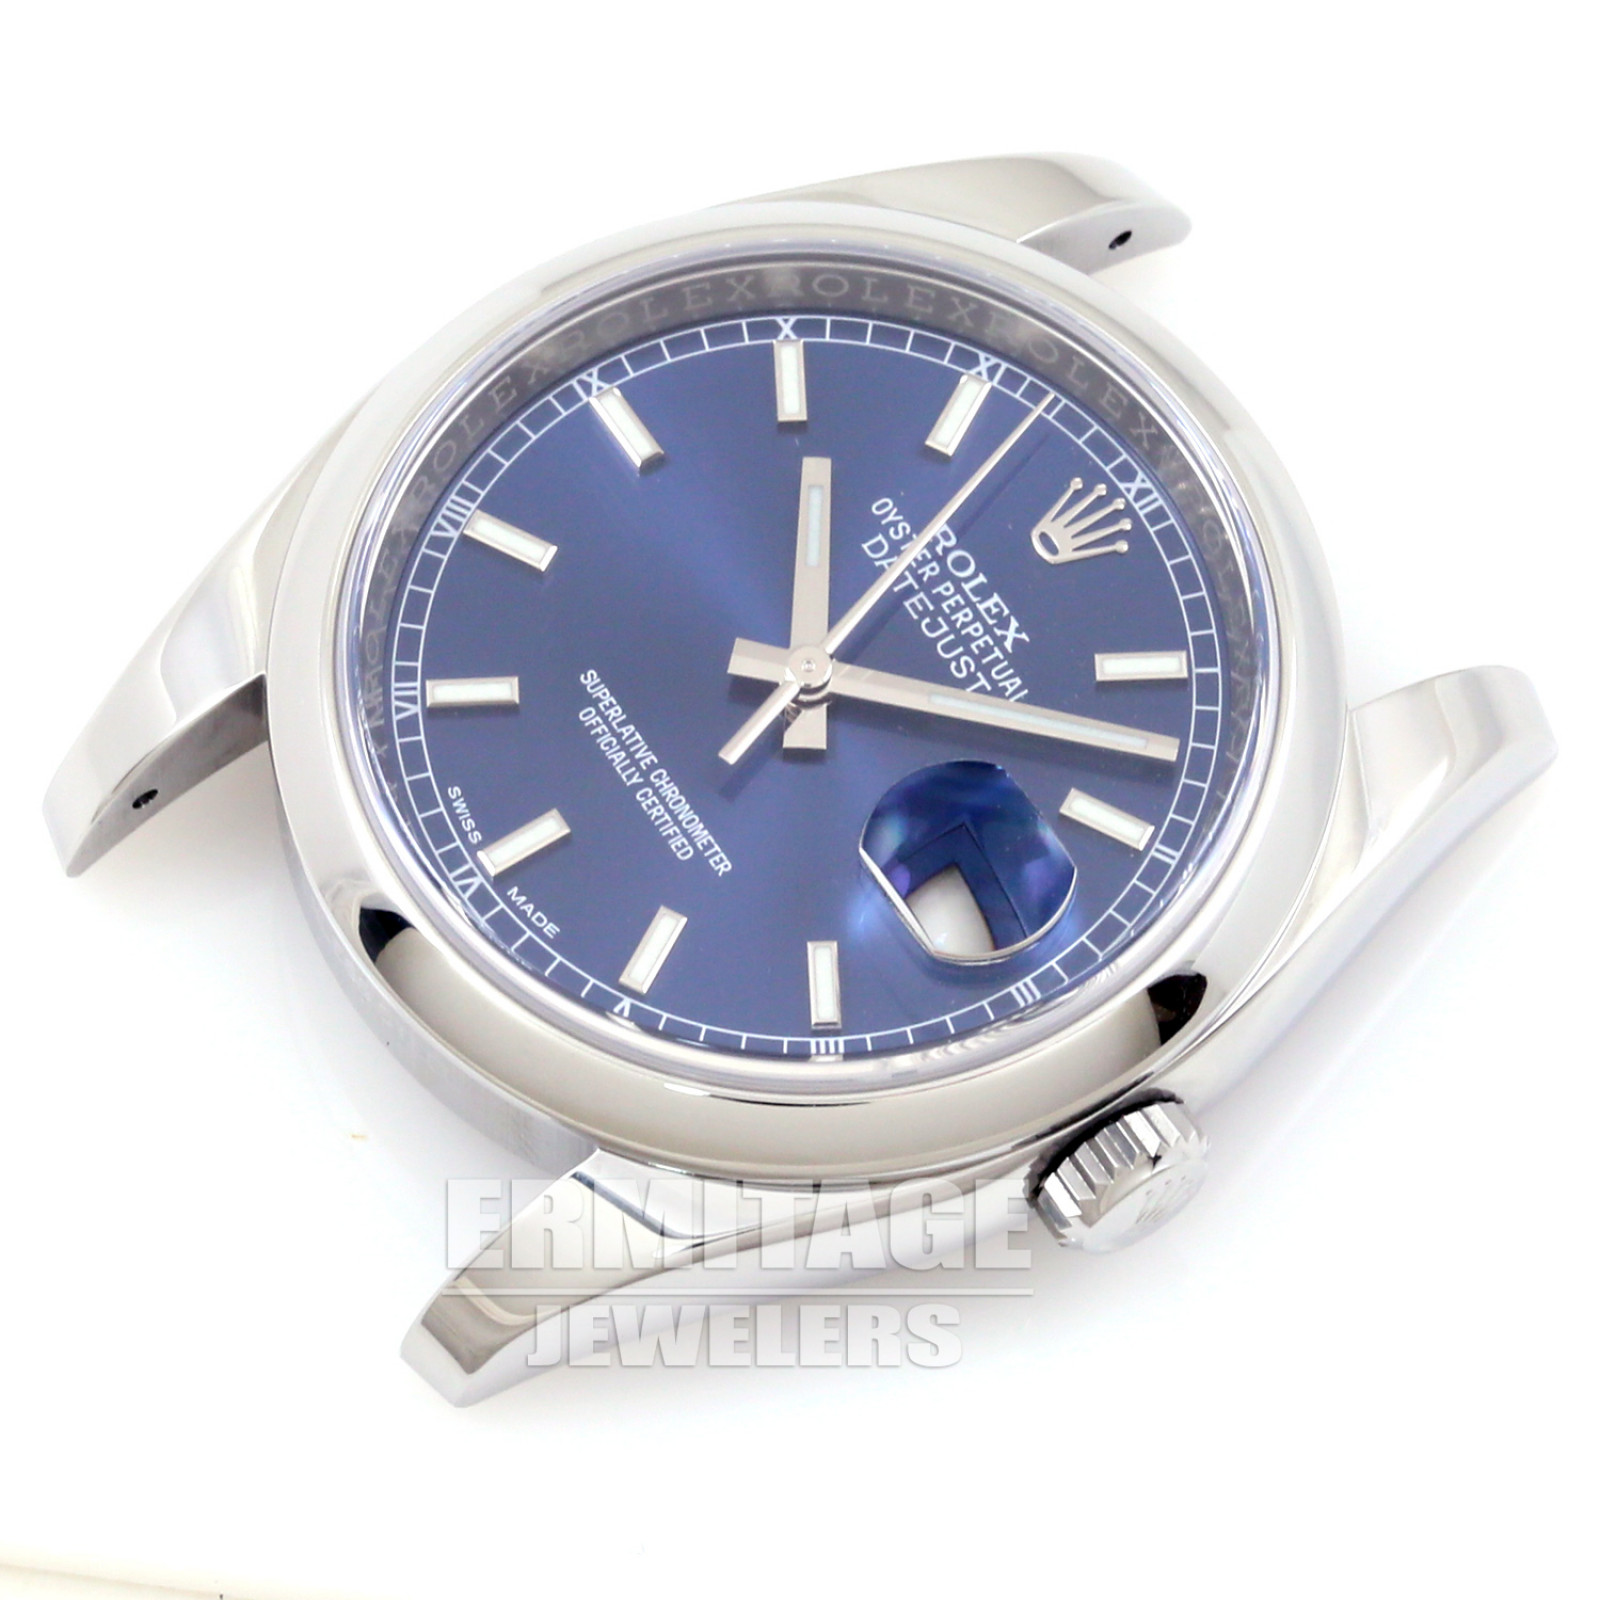 Sell Rolex Datejust 116200 with Blue Dial